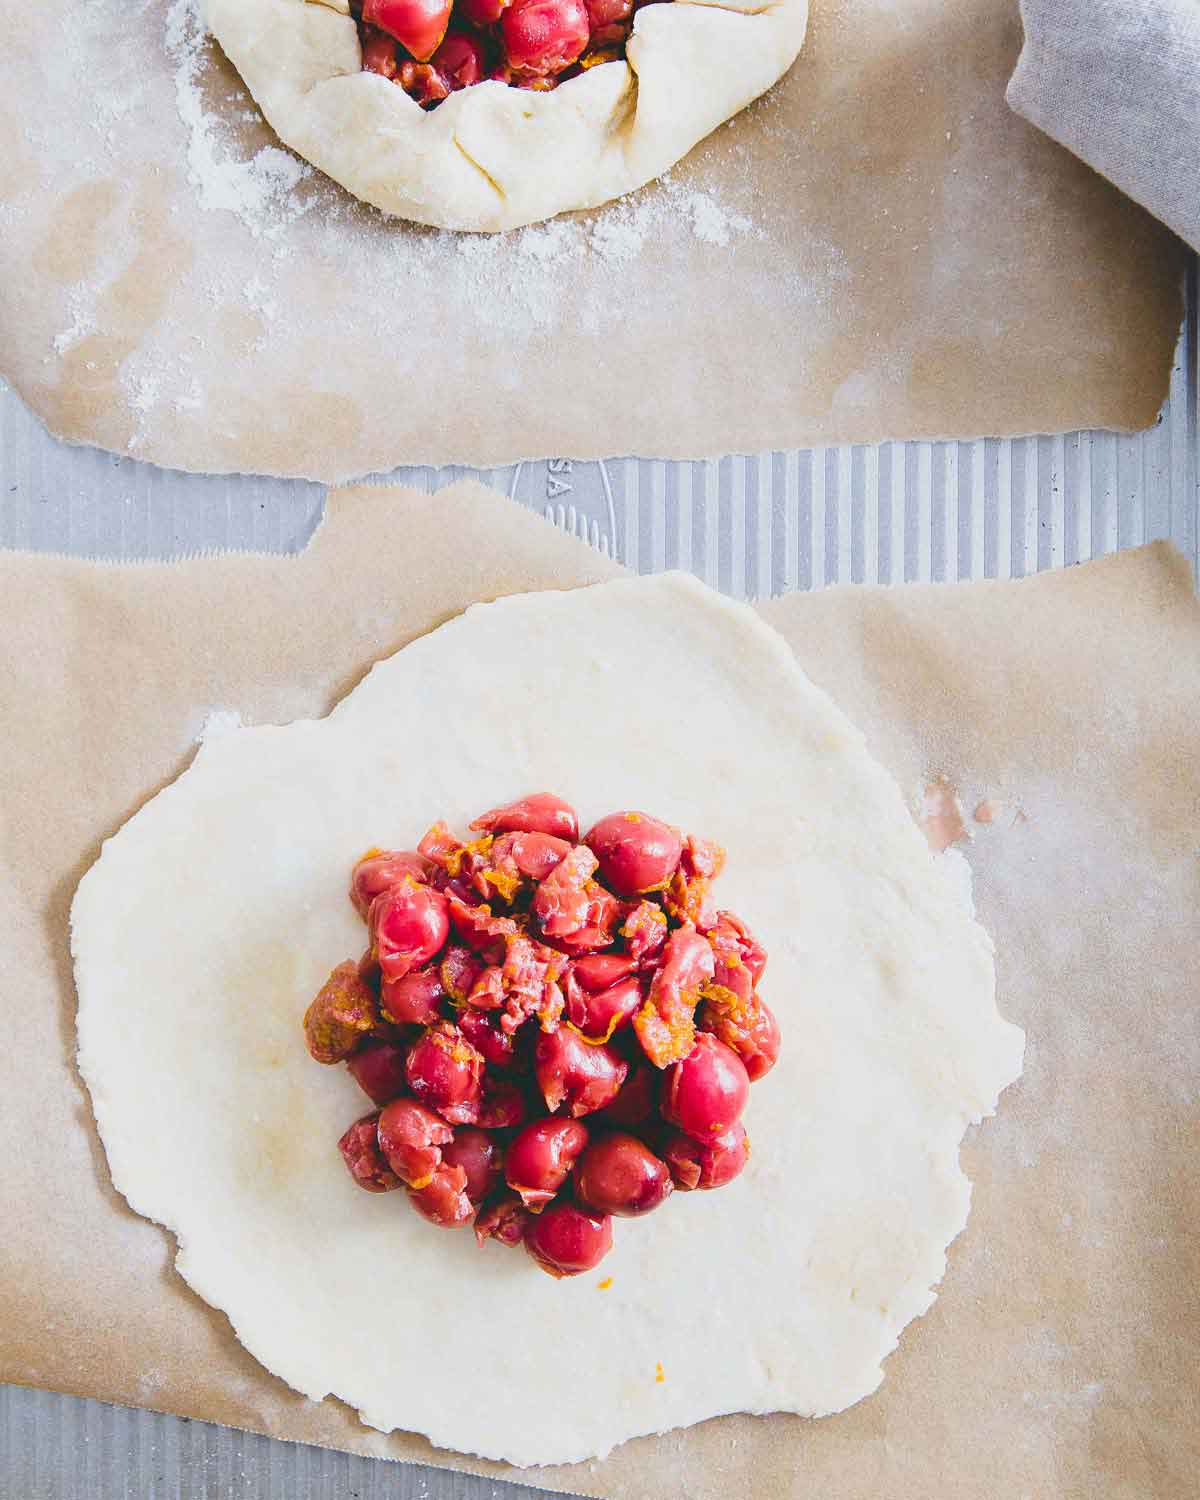 Try these sour cherry mini galettes instead of hand pies next time you want a smaller dessert option.